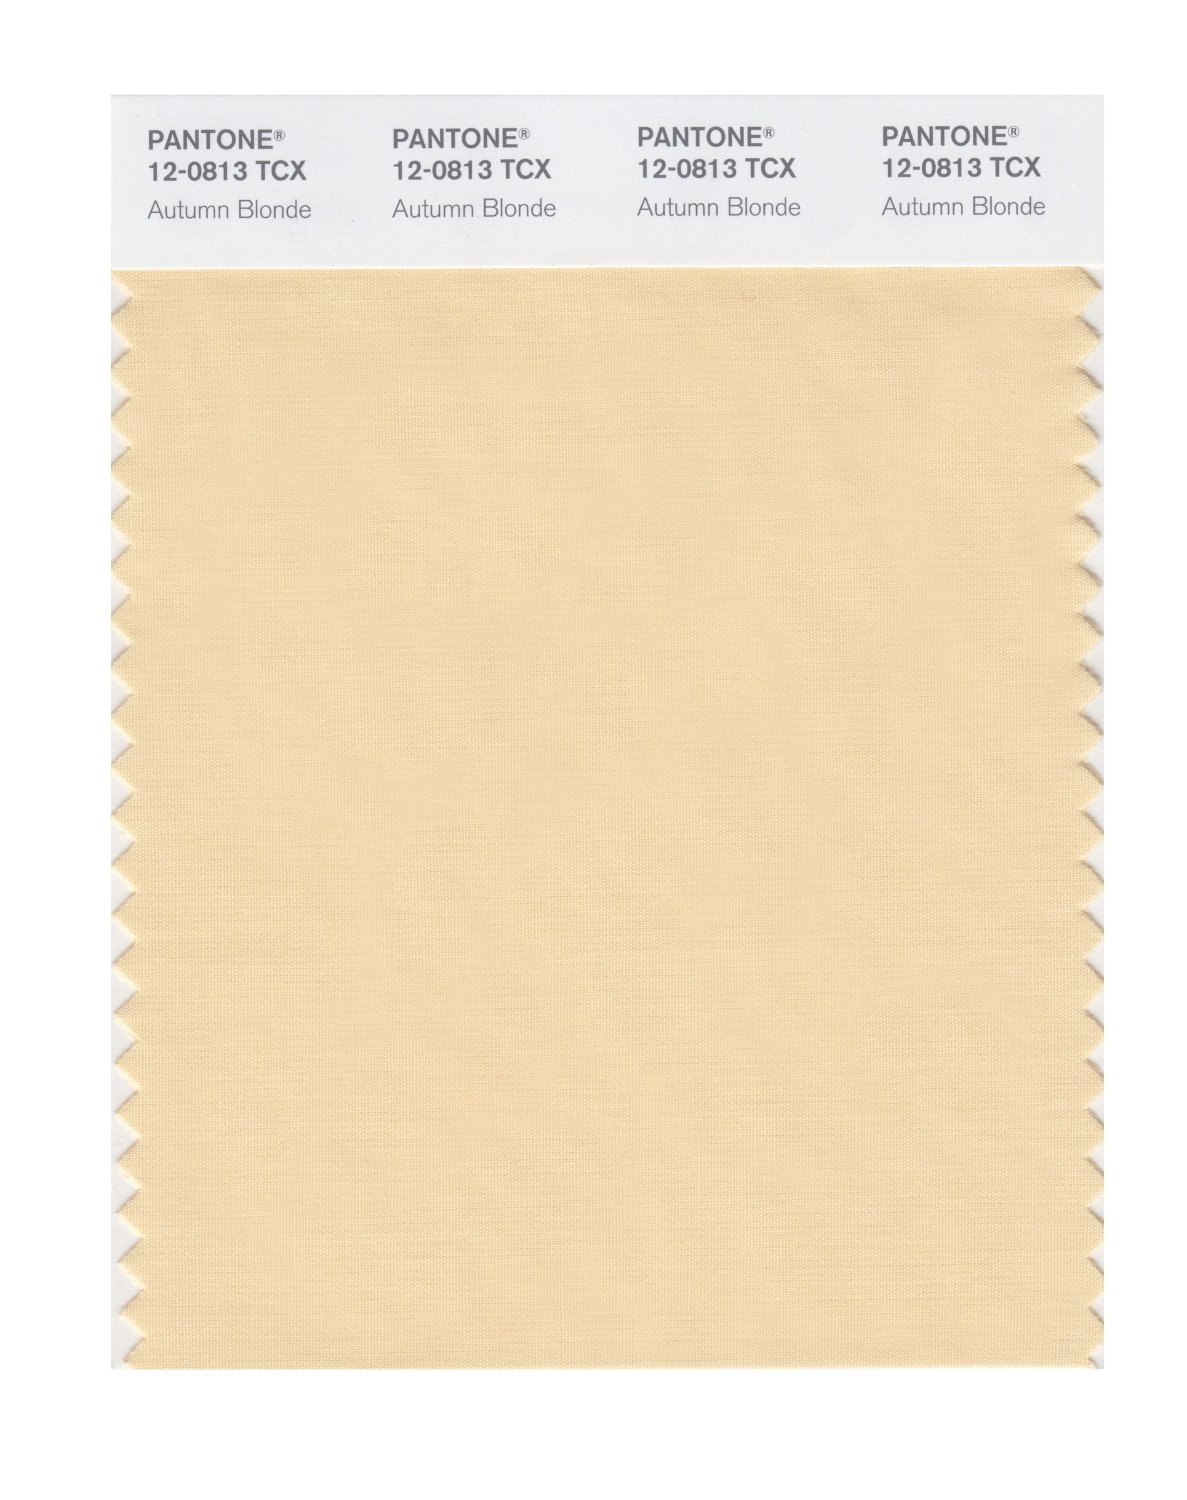 Pantone Smart Swatch 12-0813 Autumn Blonde